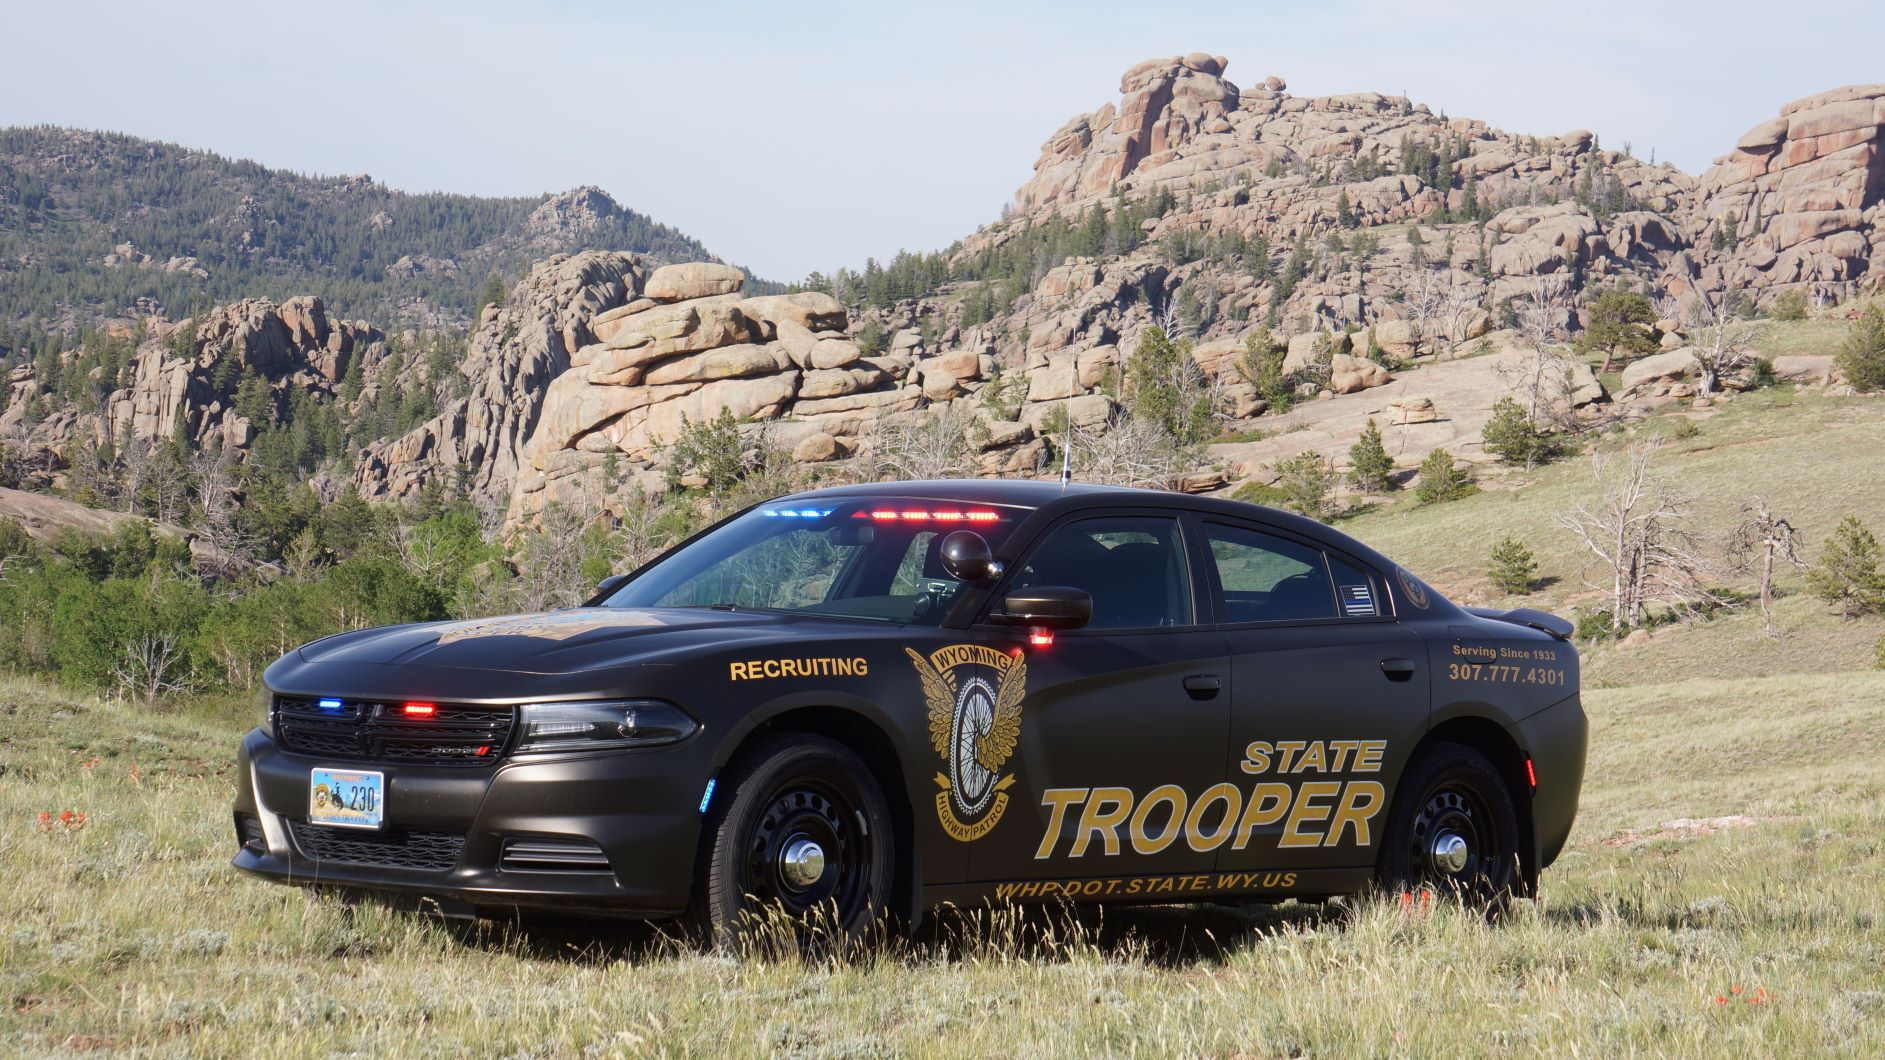 <strong>Wyoming Highway Patrol</strong>